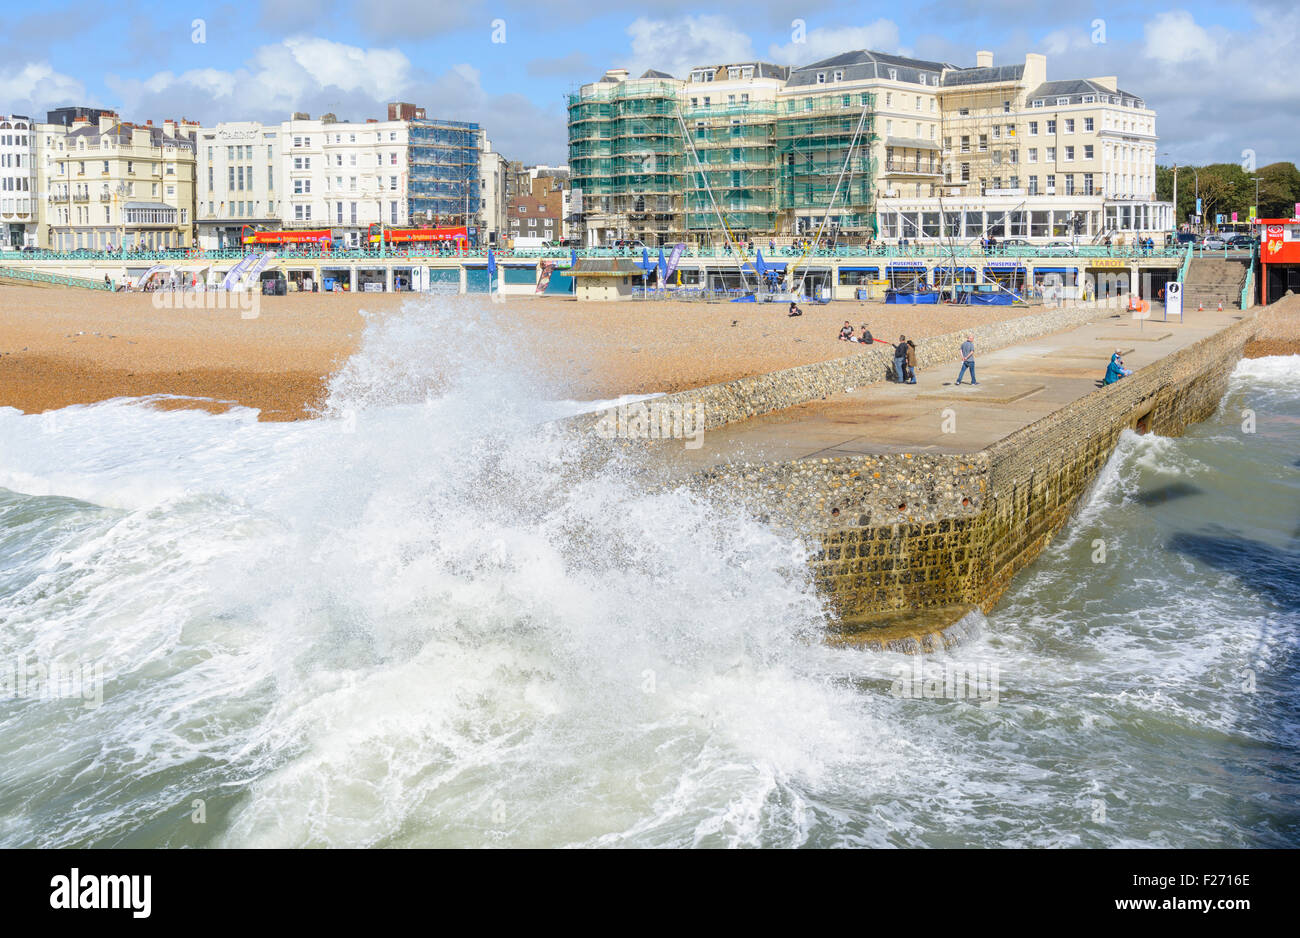 Brighton groyne. Waves splashing over the old groyne at the seafront in Brighton, East Sussex, England, UK. Brighton - Stock Image